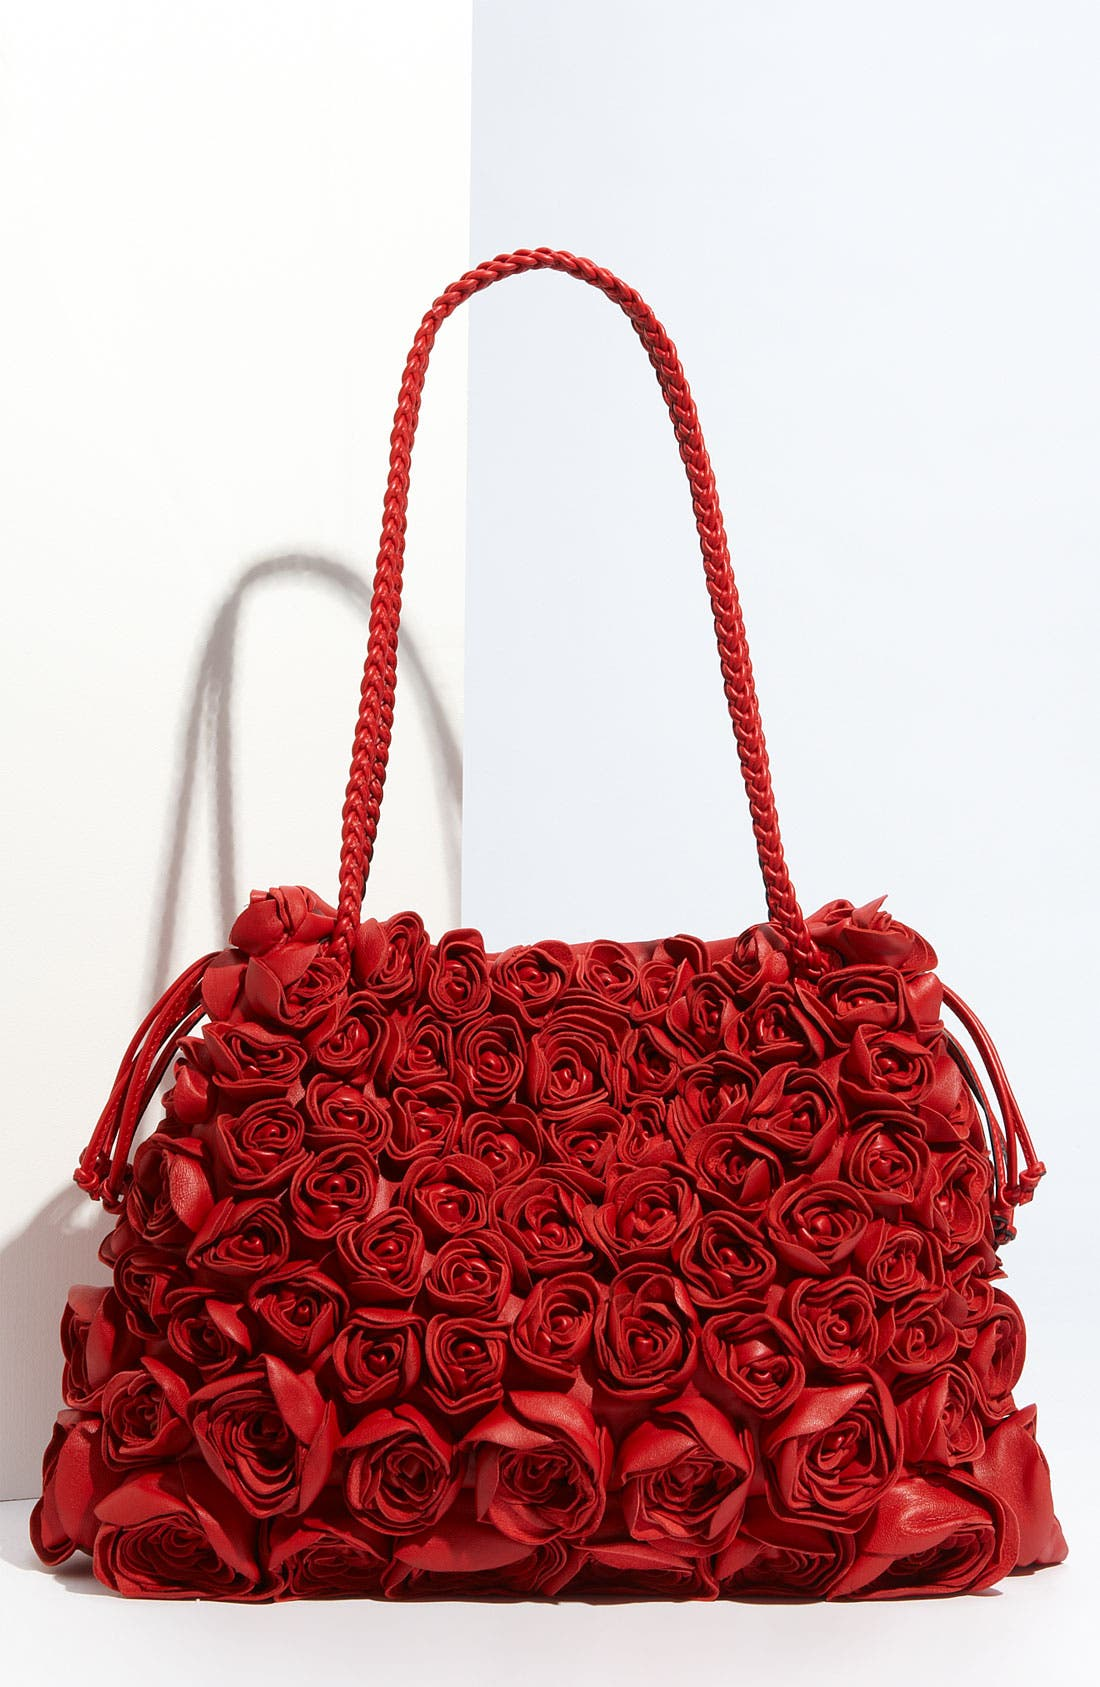 Alternate Image 1 Selected - Valentino 'Nappa Rose' Leather Tote